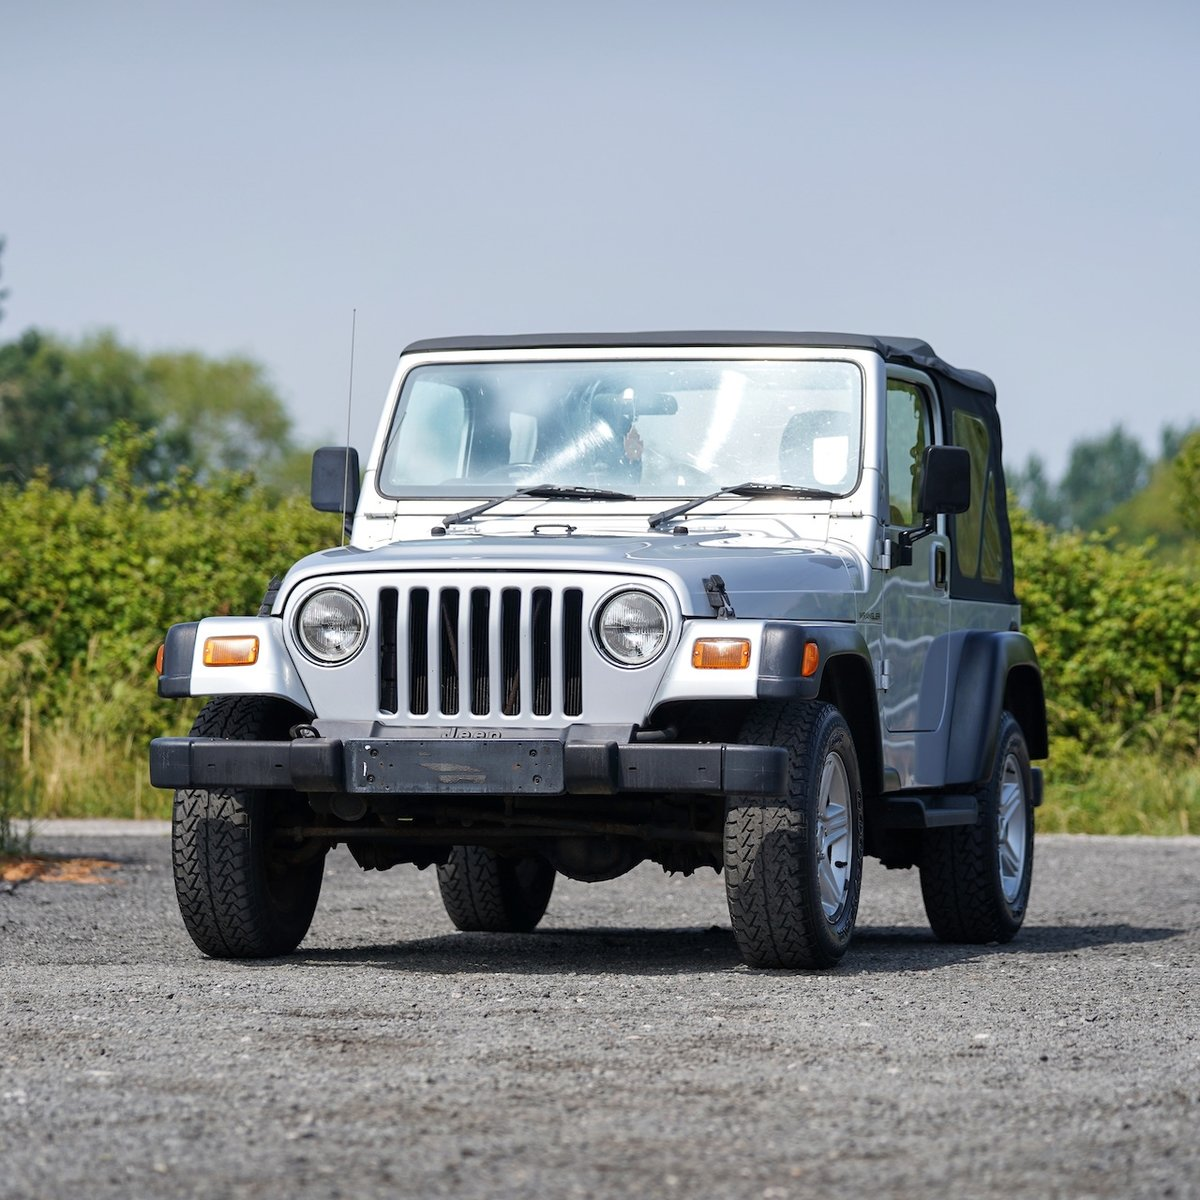 2002 Jeep Wrangler 4.0 Grizzly 57,000 Miles from New For Sale (picture 1 of 6)